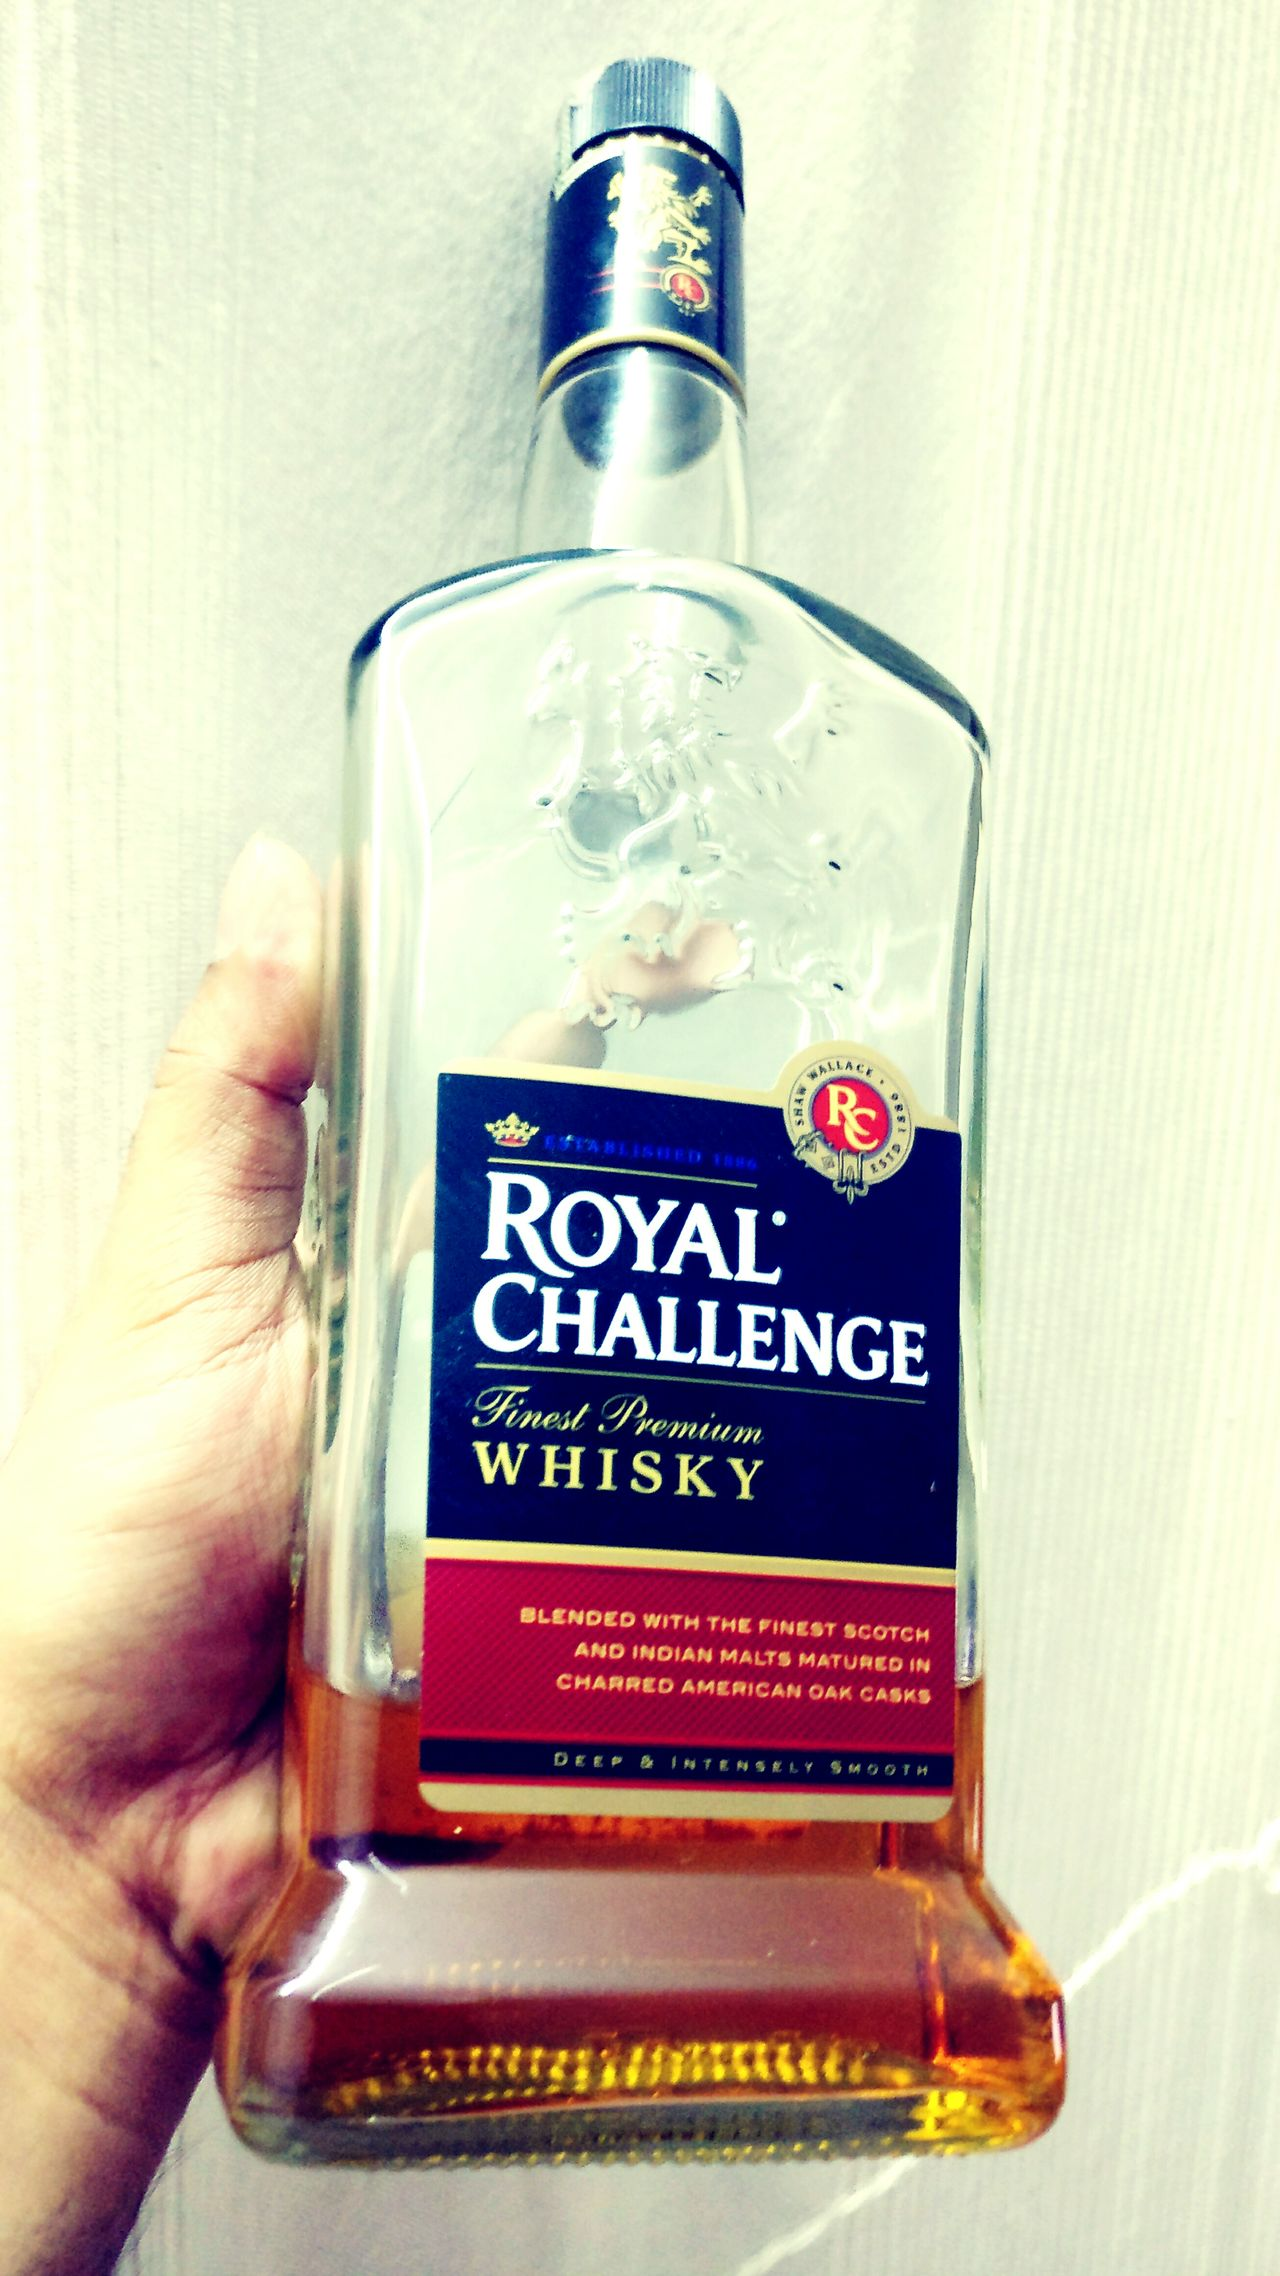 Royal Challenge RC Drink Bottle Only Men Wine Moments Premium Whiskey Wiskey Collection Wiskey Bottle Alcoholic Beverages Food And Drink Alcohol Bottles Alcoholic Drink Alcoholic  Wisky Drinks Alcoholic